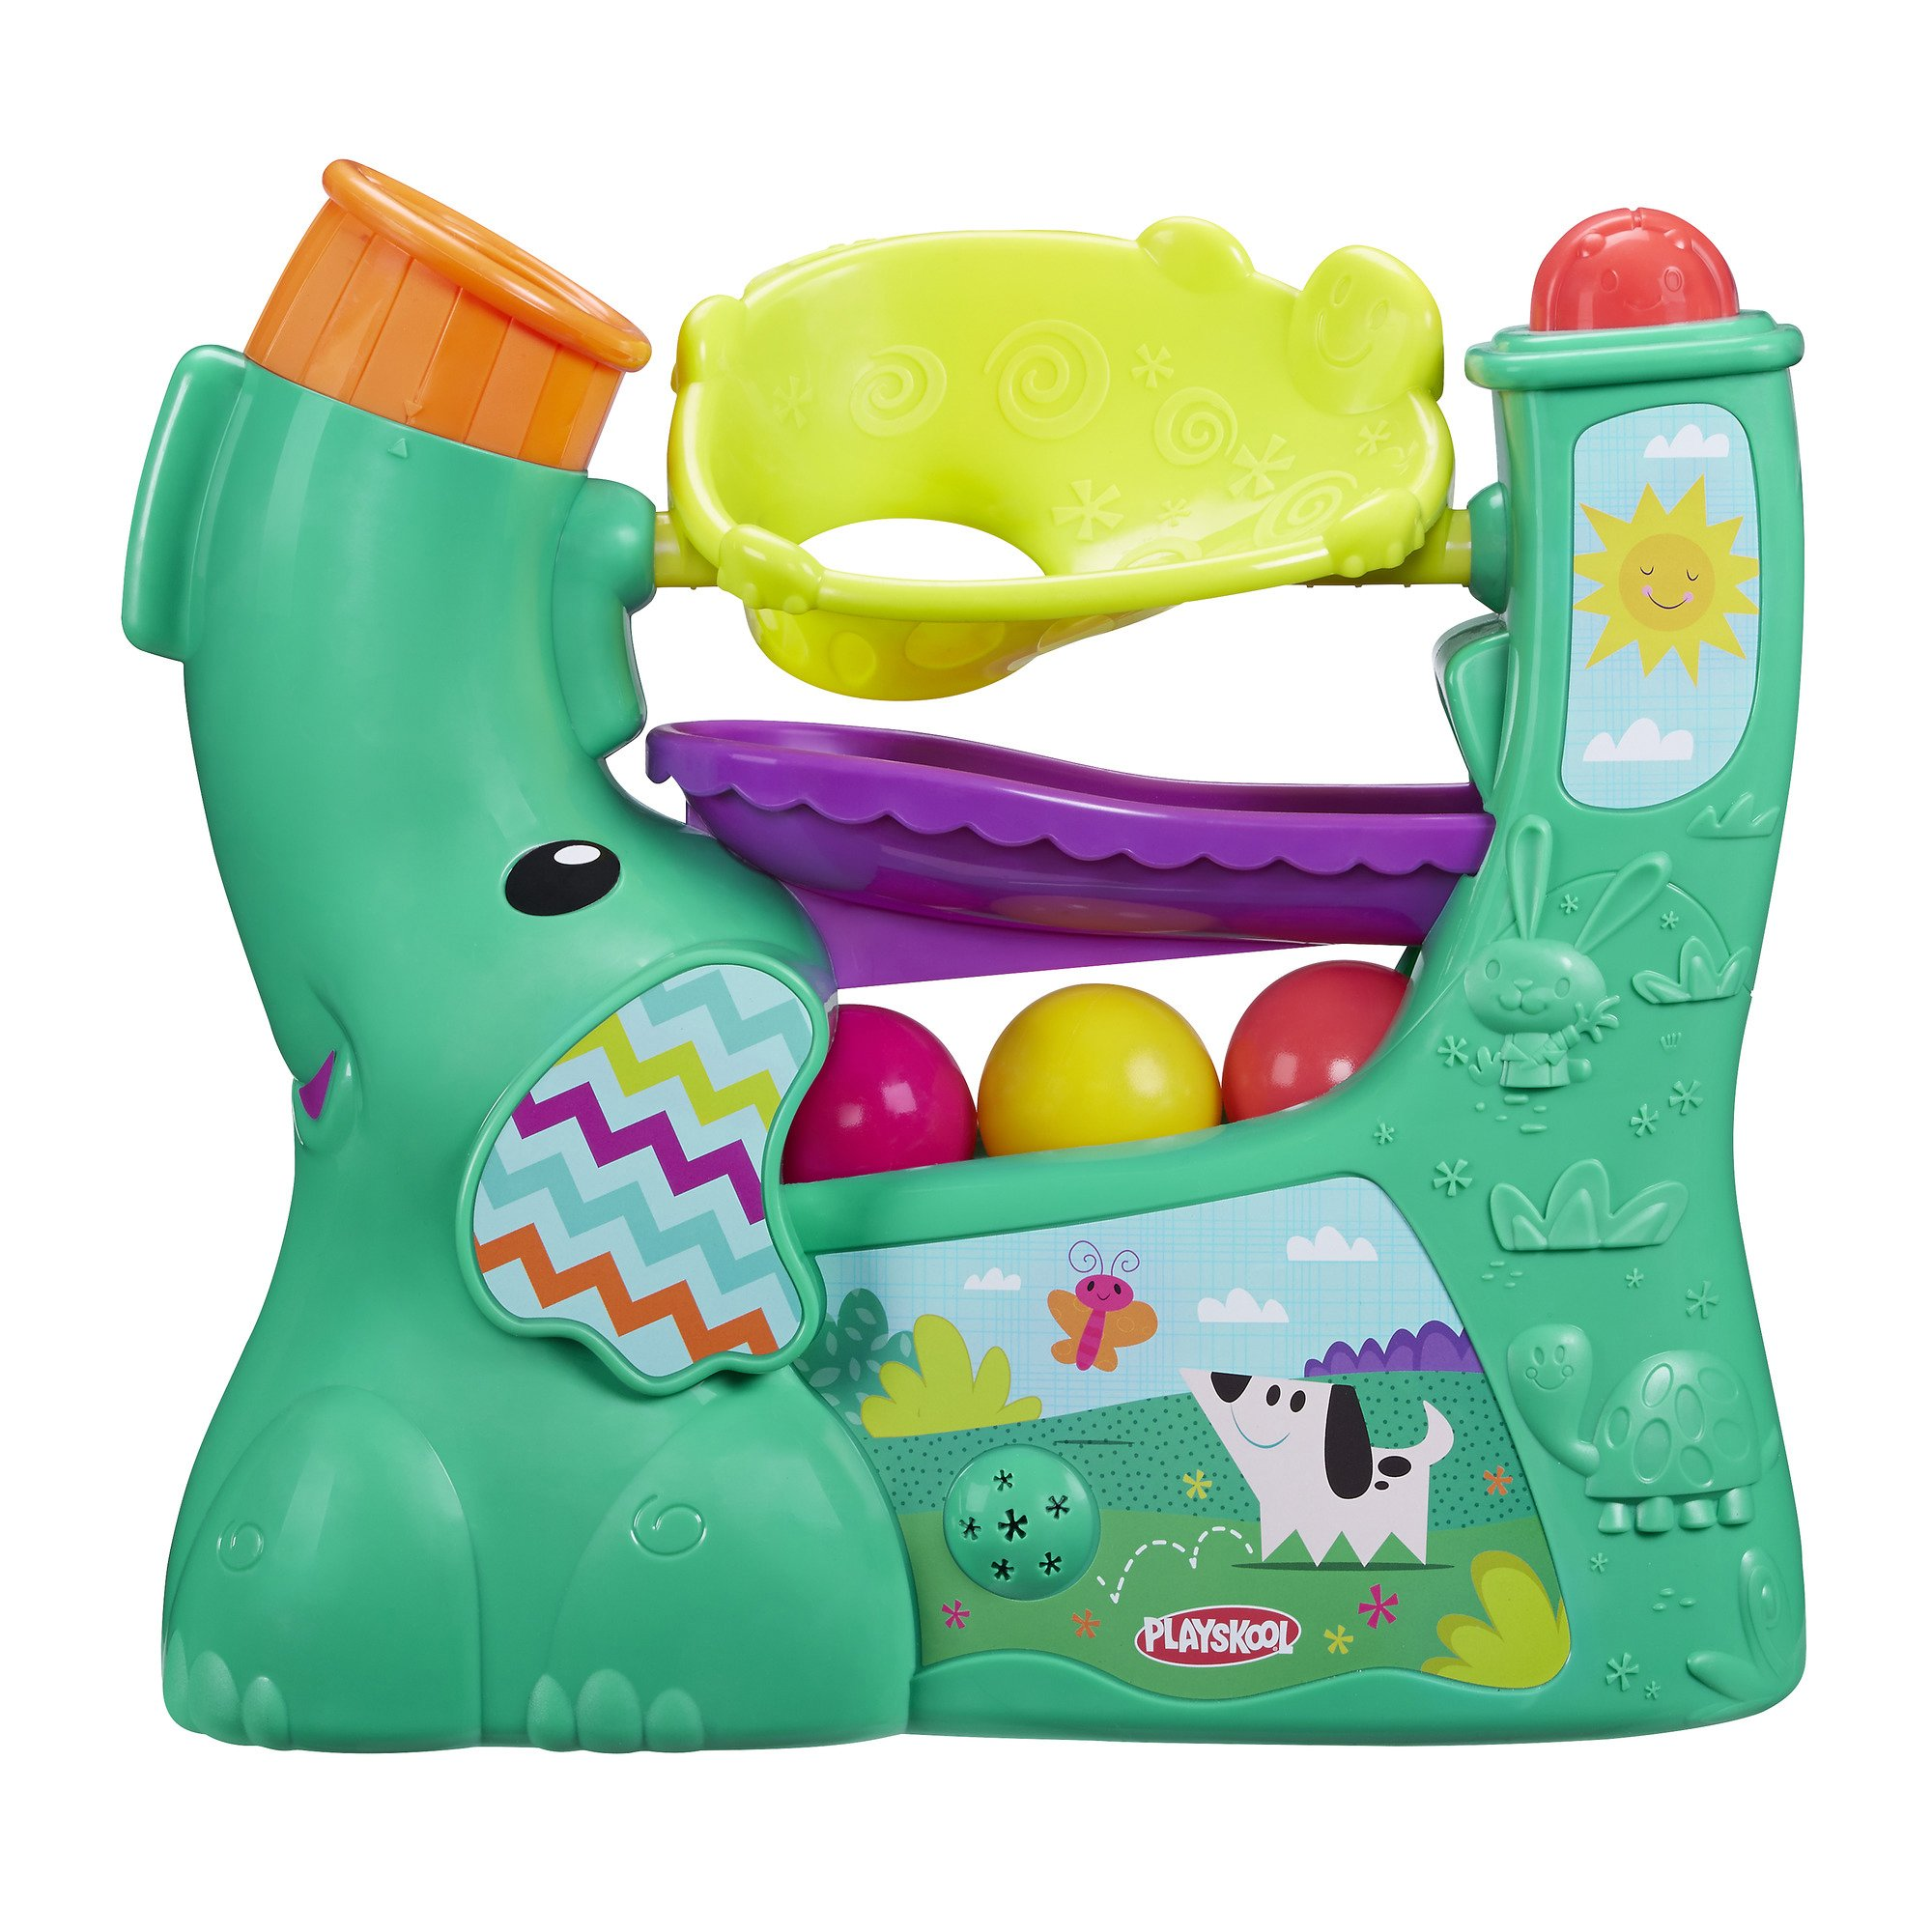 Playskool Chase n Go Ball Popper (Teal), Ages 9 Months and up by Playskool (Image #1)